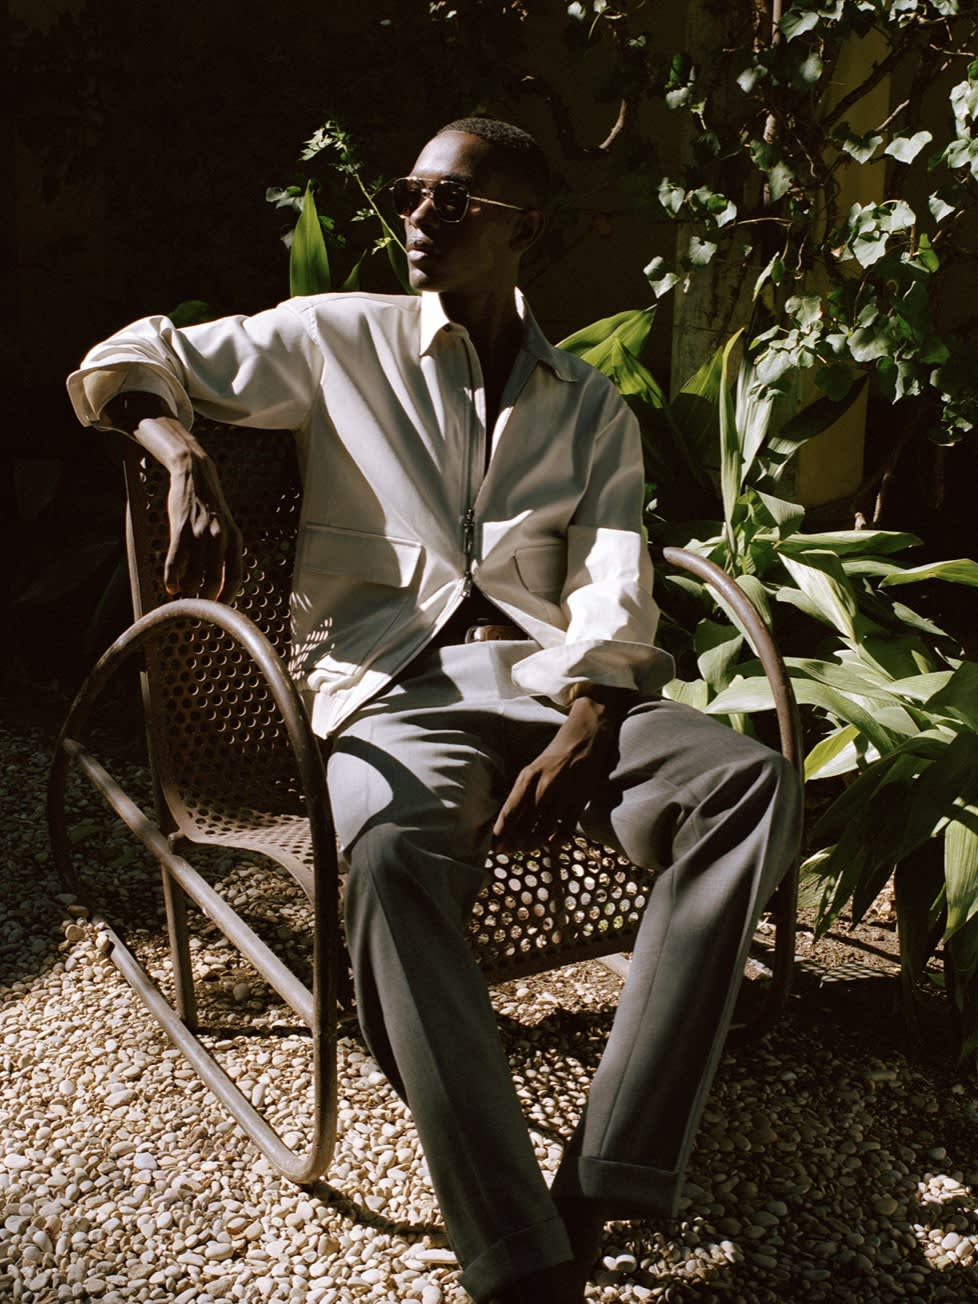 Male model wearing garments from the Brioni Spring/Summer 2021 Collection